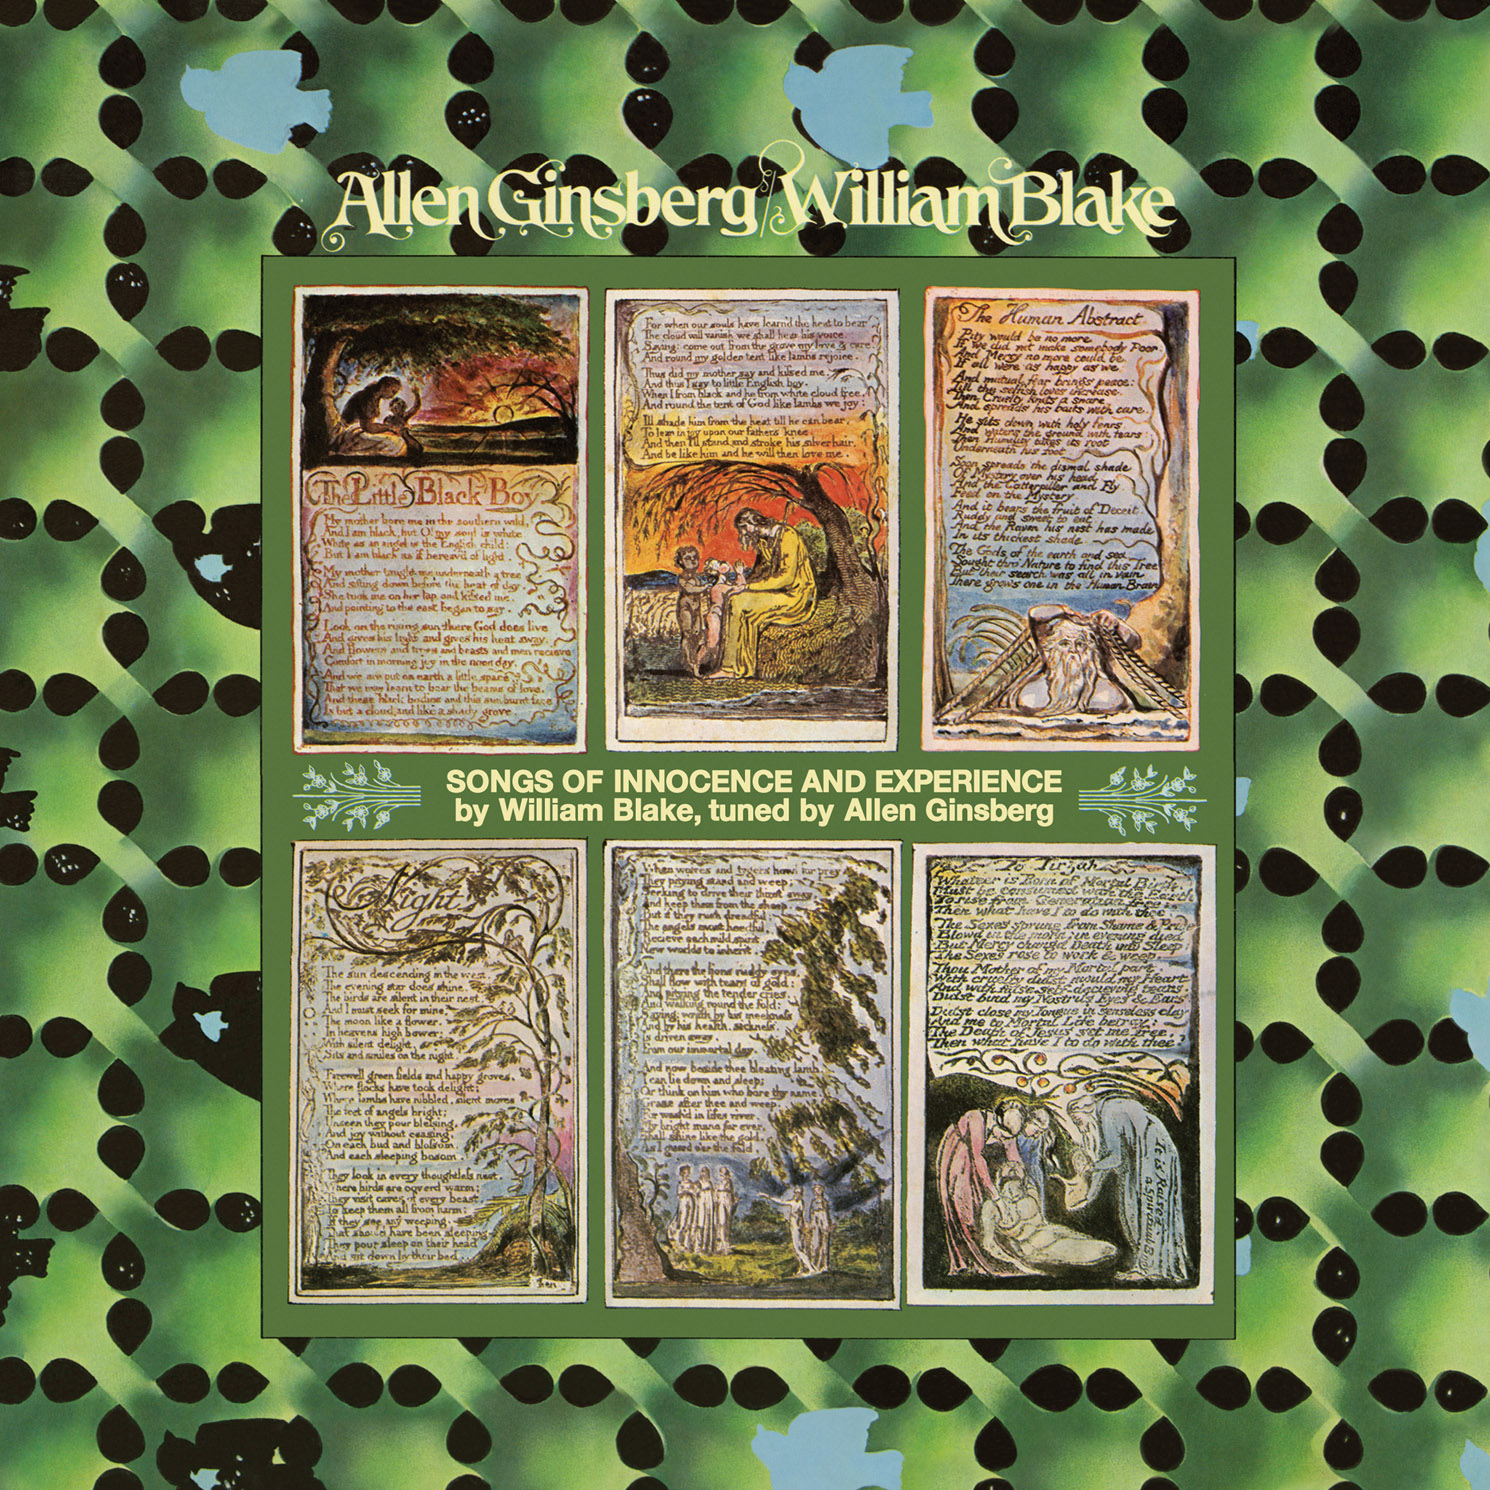 Allen Ginsberg - The Complete Songs of Innocence and Experience   Release Date: June 23, 2017 Label: Omnivore Recordings  SERVICE: Restoration, Mastering NUMBER OF DISCS: 1 GENRE: Rock FORMAT: CD